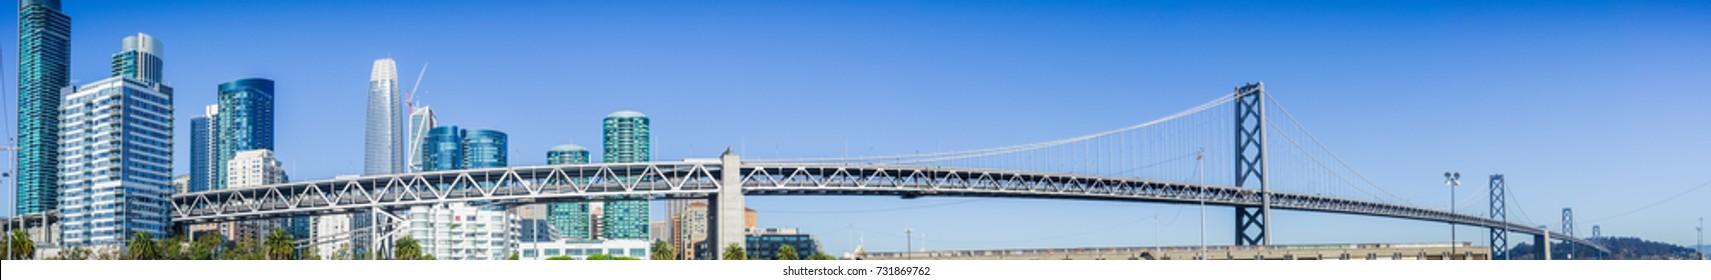 Panoramic view of the Bay Bridge spanning from the Financial District to Treasure Island on a sunny and clear day